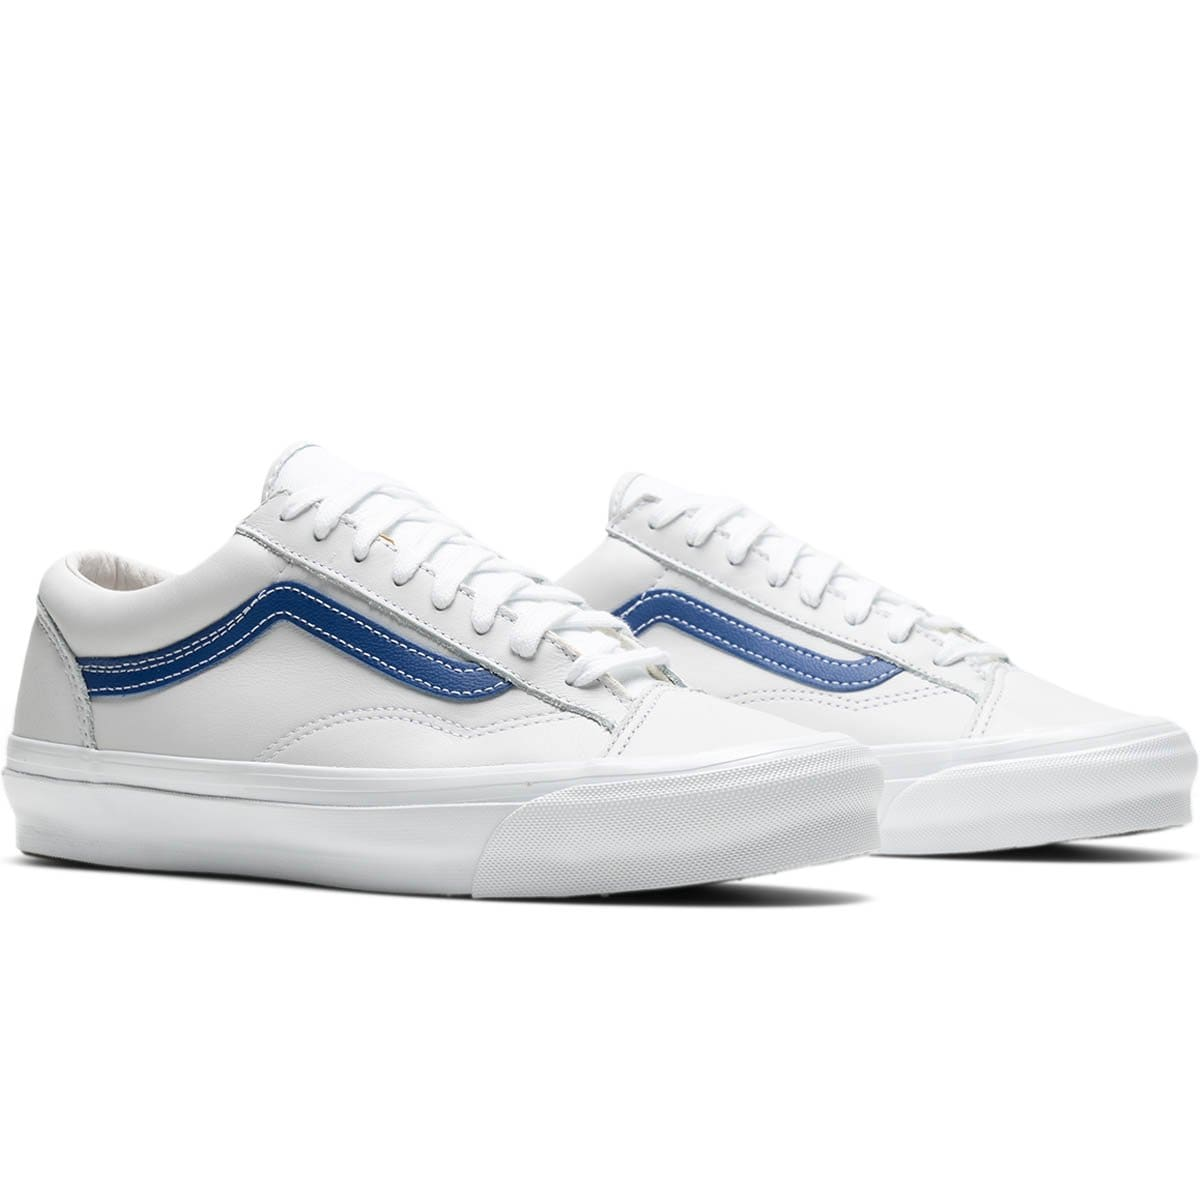 Vault by Vans Shoes OG STYLE 36 LX (LEATHER)